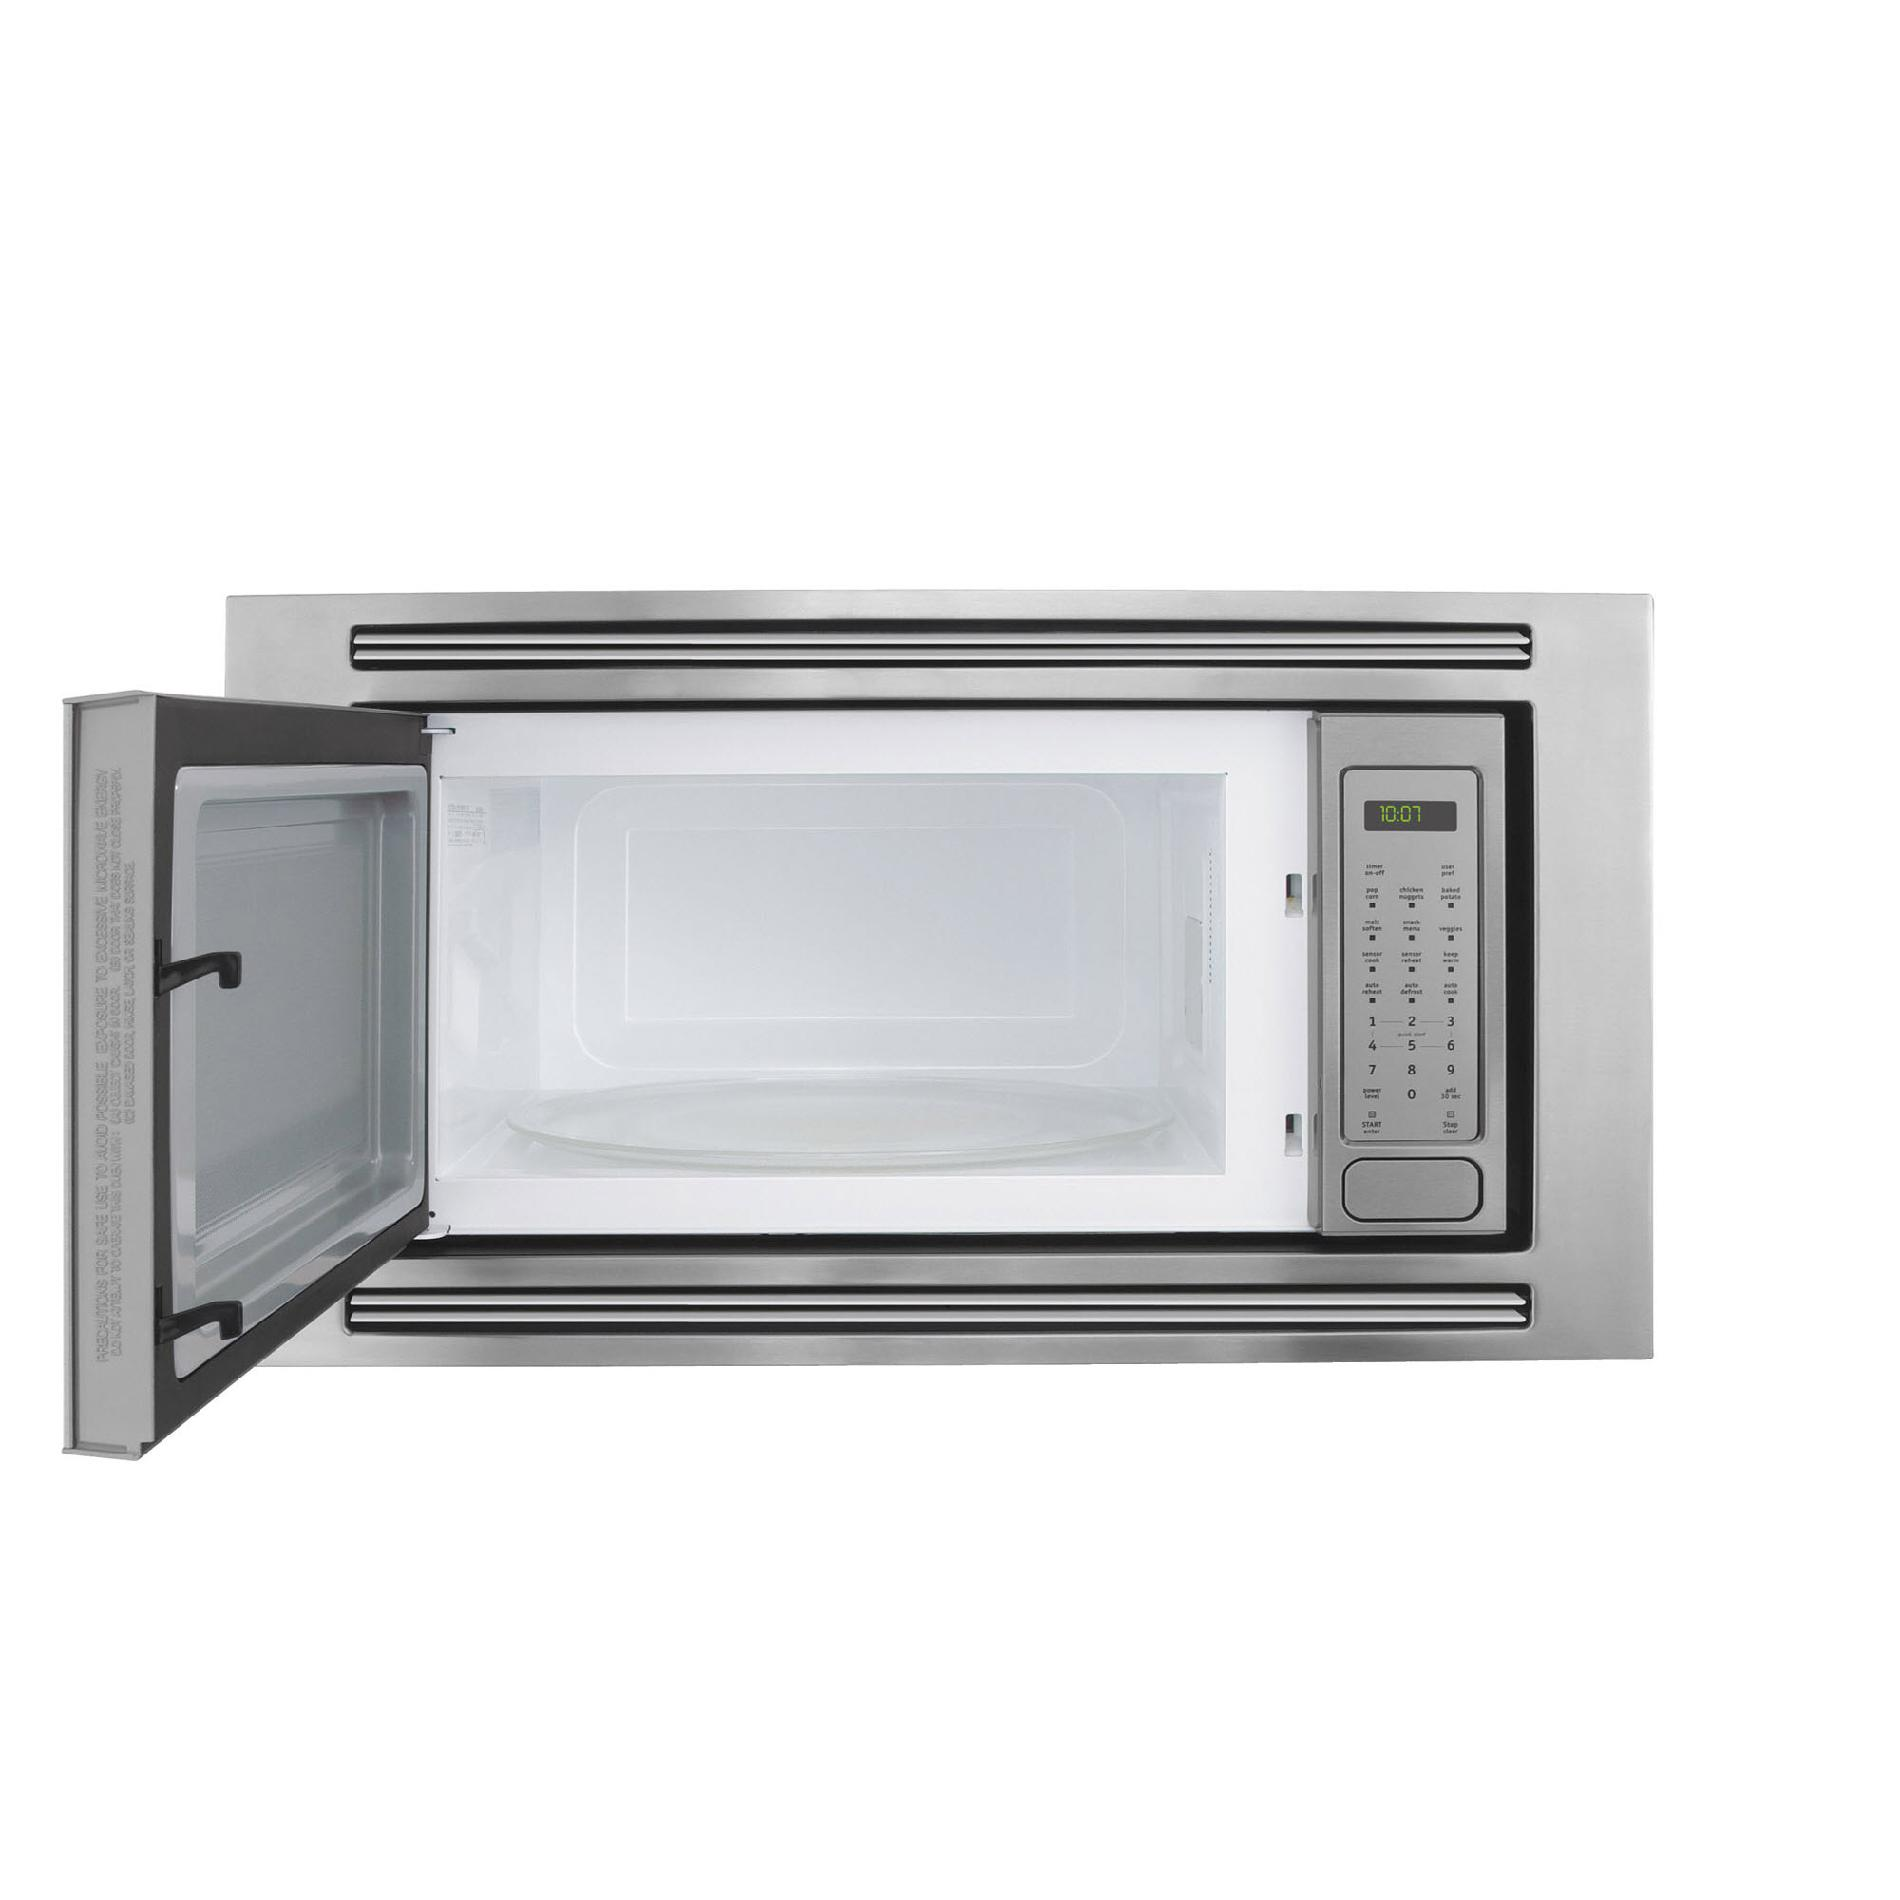 "Frigidaire Professional Series 24"" 2.0 cu. ft. Built-In Microwave Oven"